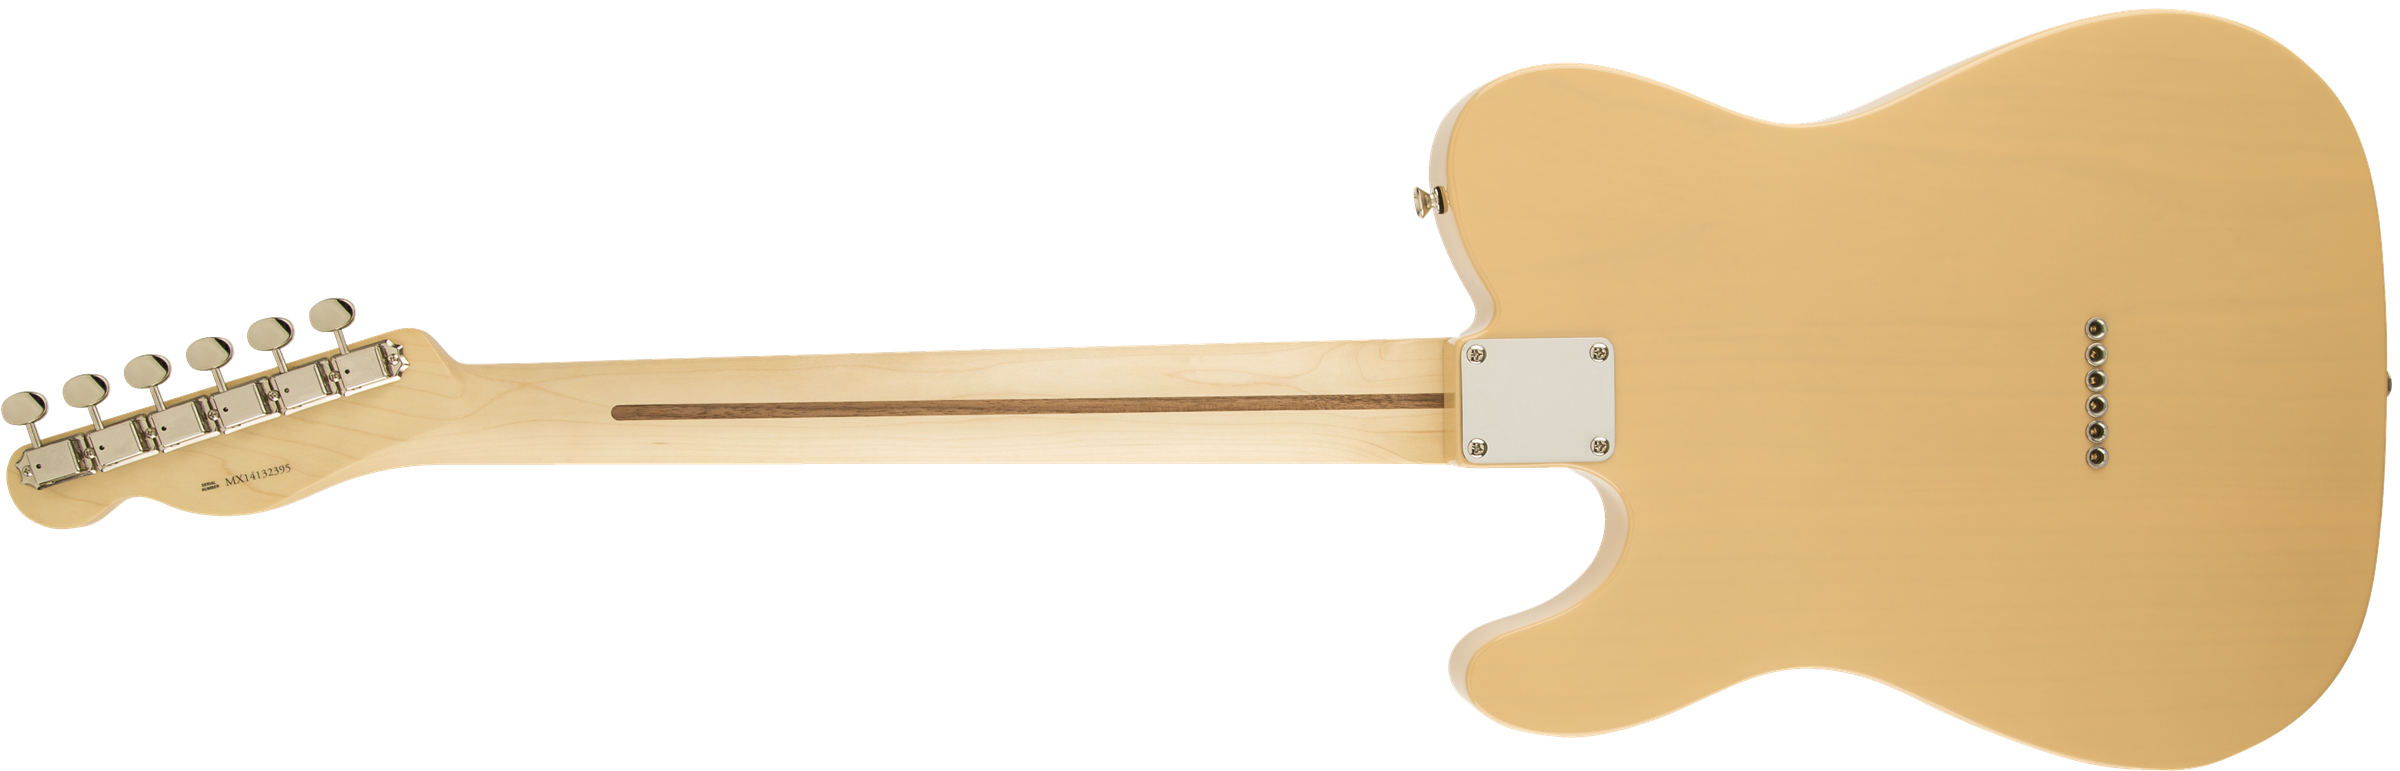 Image of the Deluxe Nashville Tele®, Maple Fingerboard, Honey Blonde